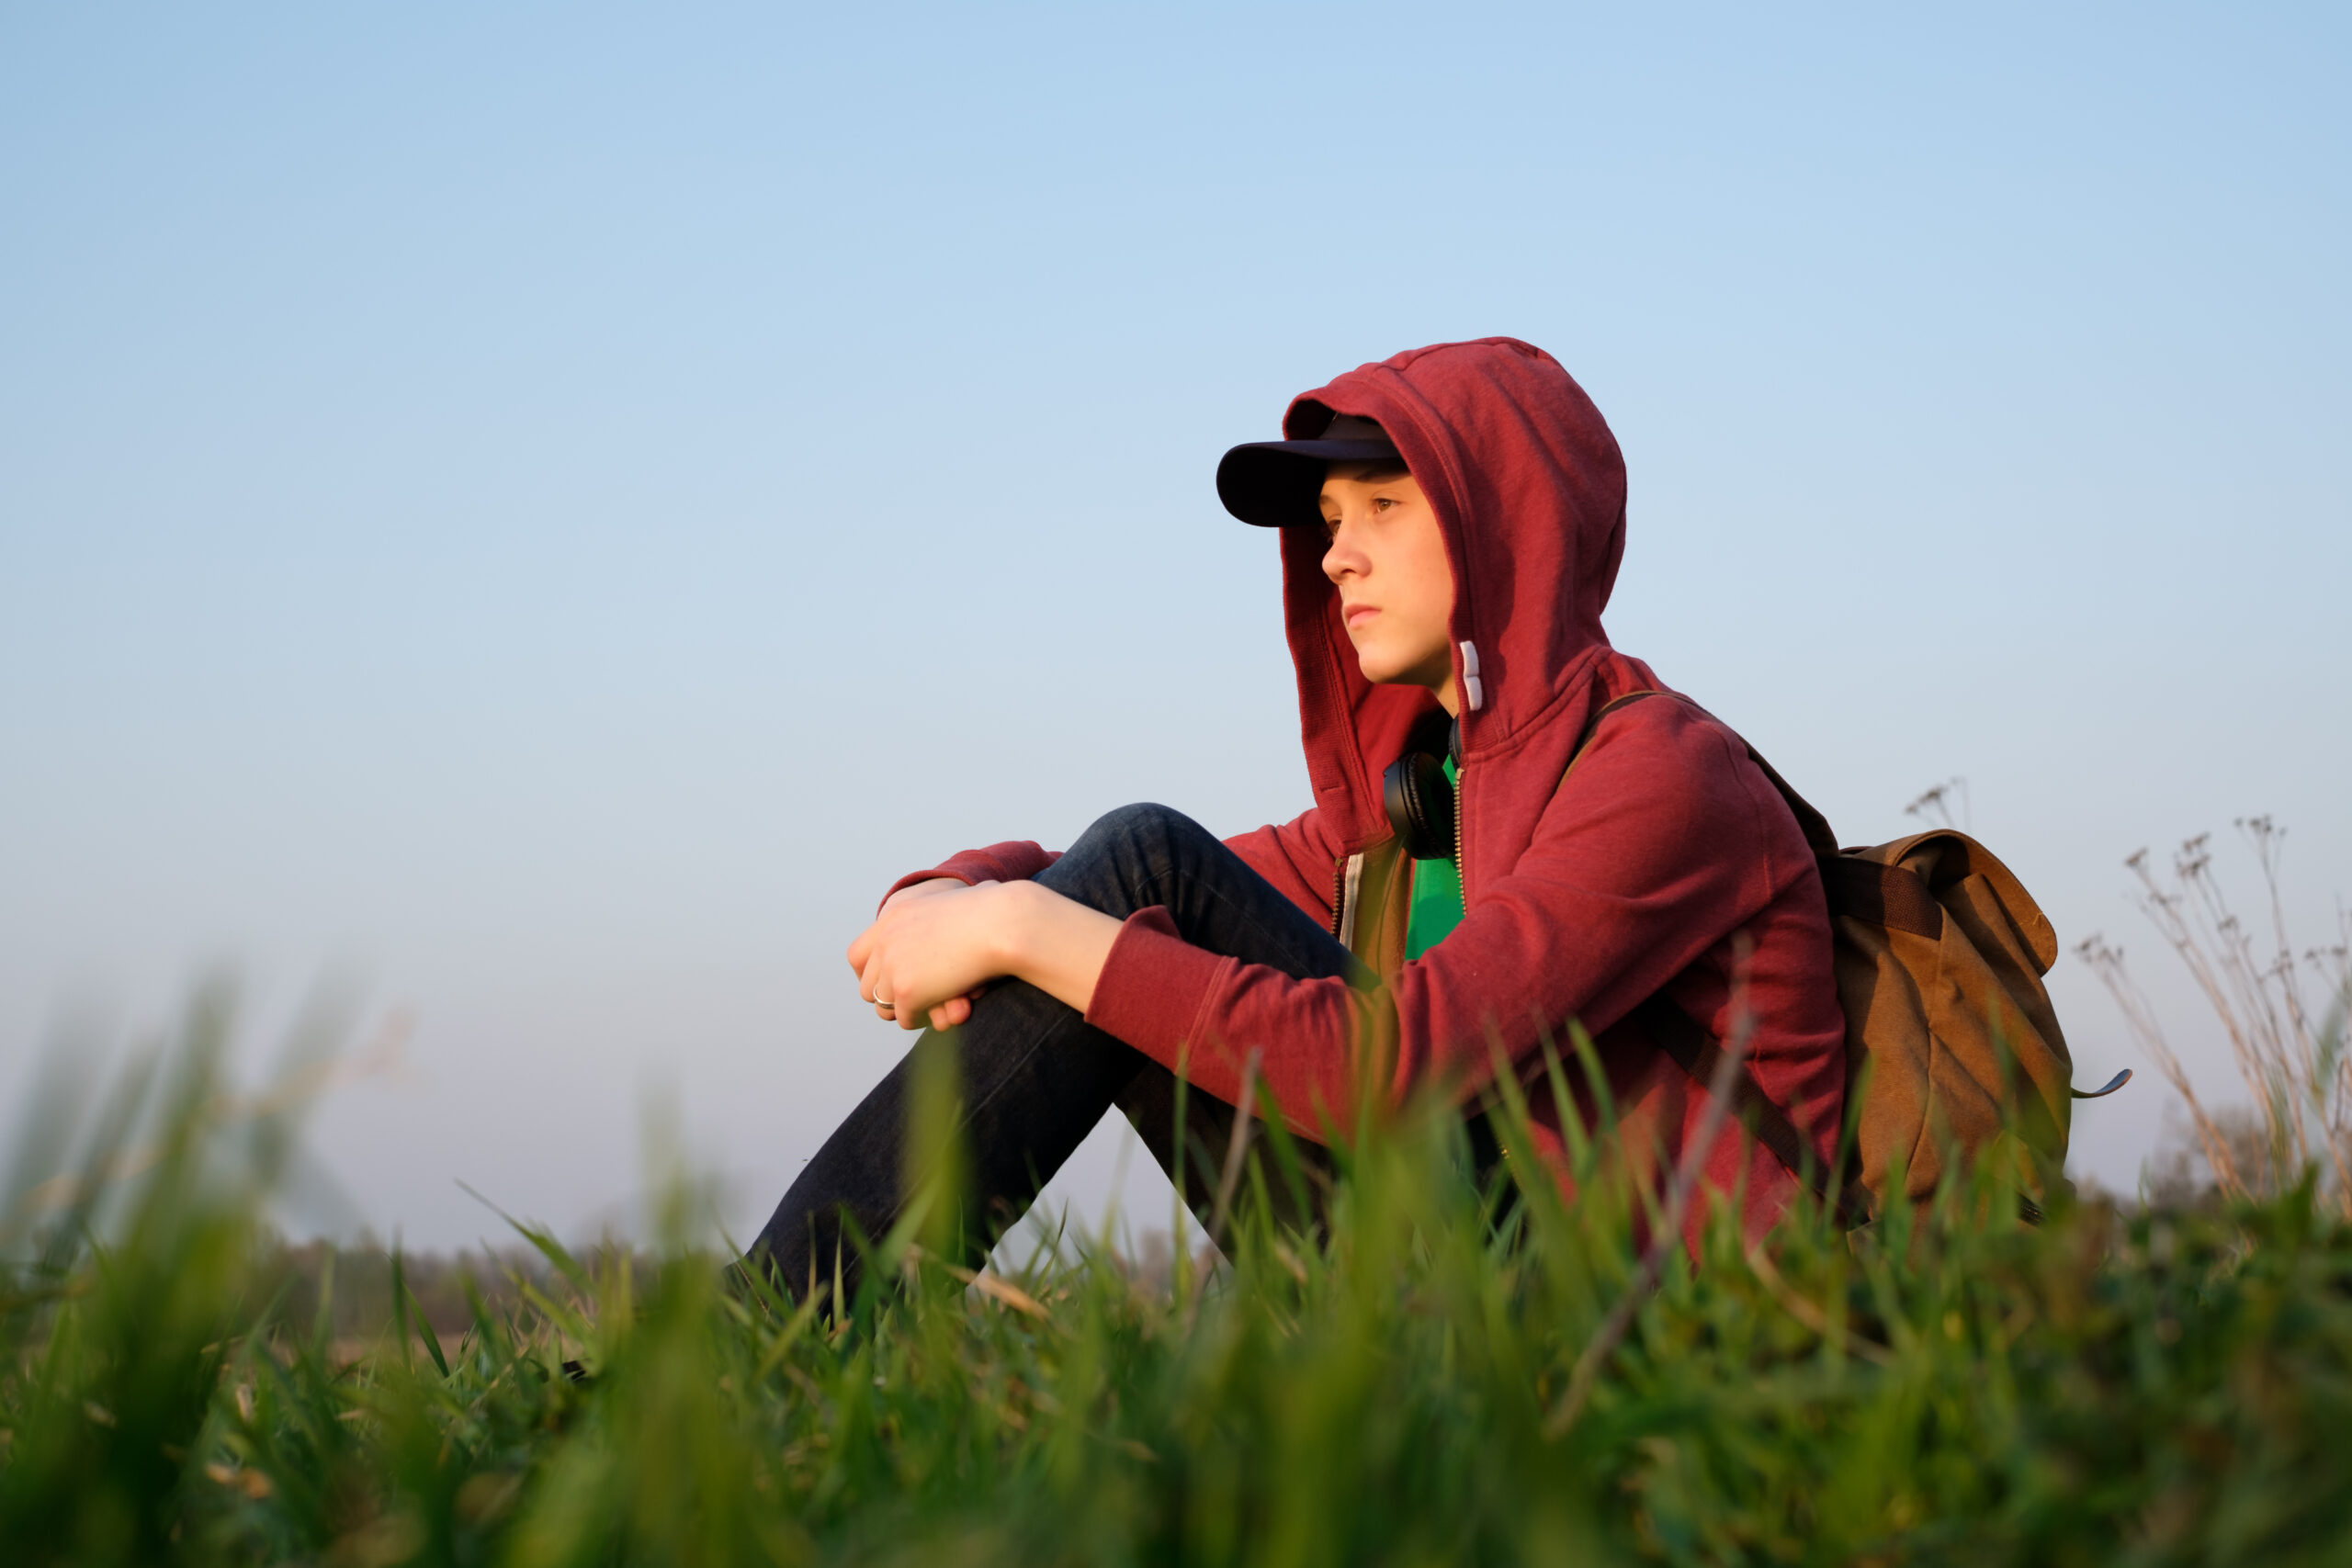 Teenager on green lawn with backpack. Happy dreamer